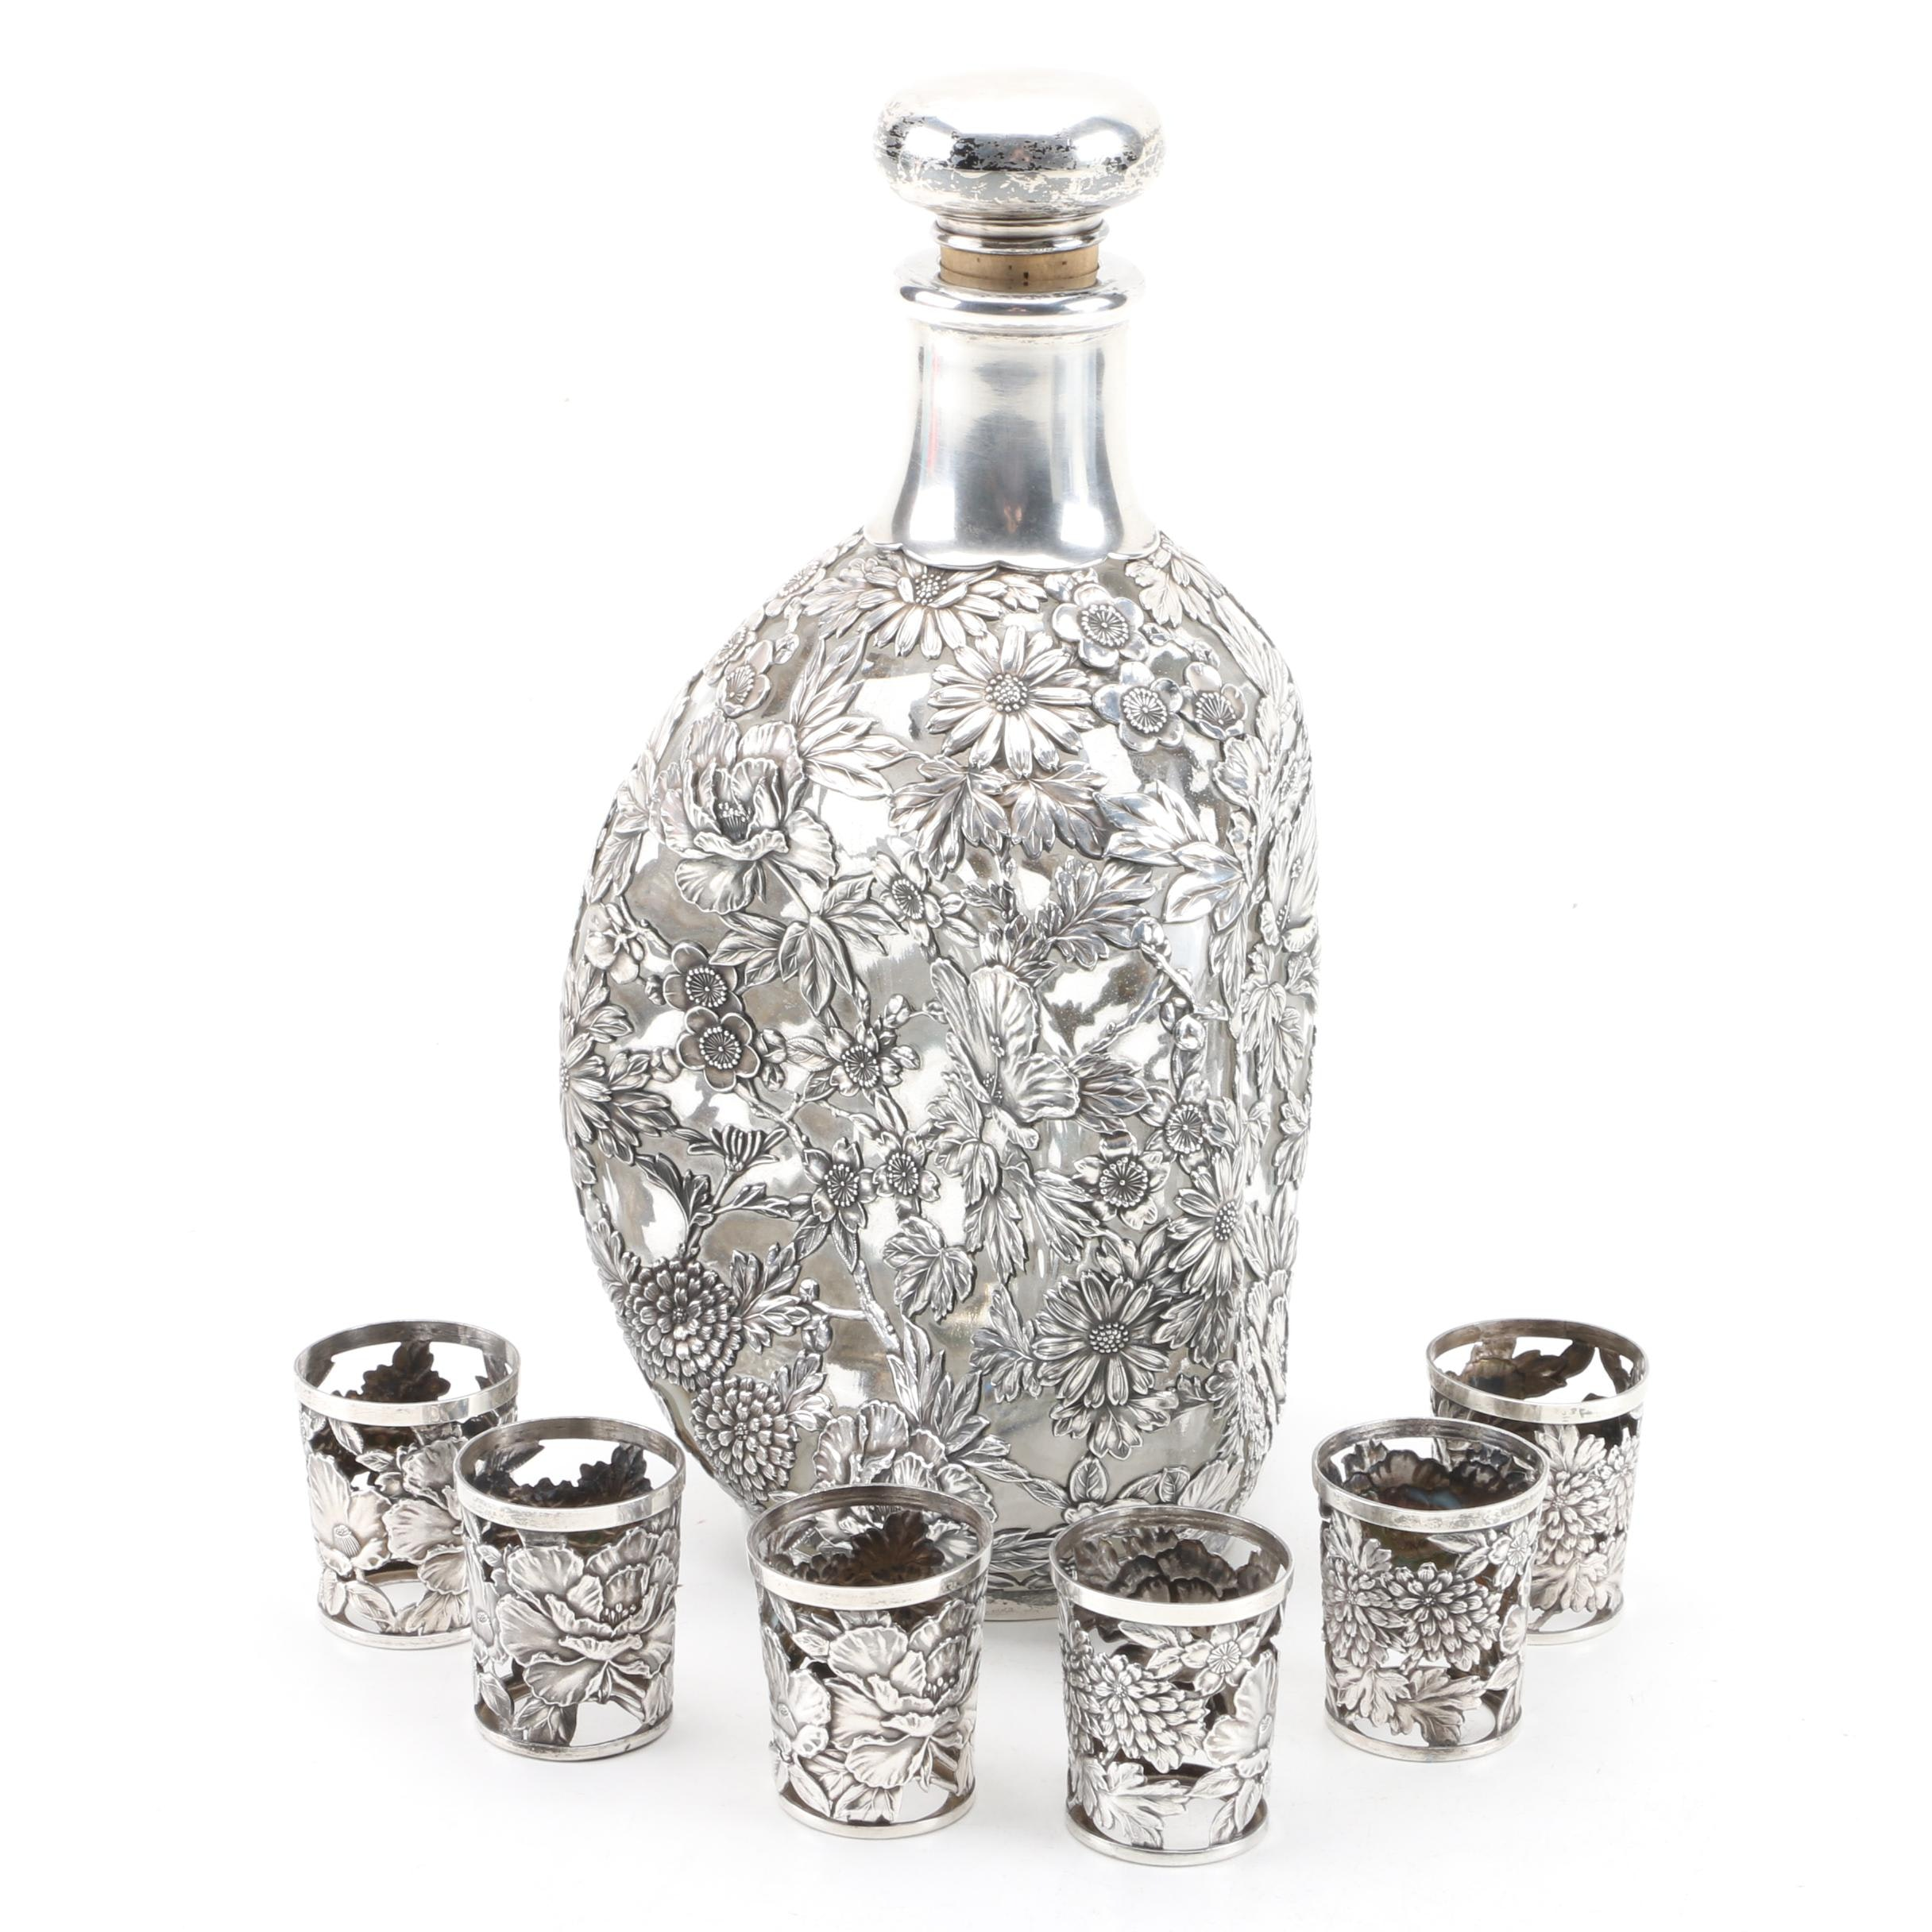 Floral Repoussé 950 Sterling Silver Decanter Case and Shot Glass Cases